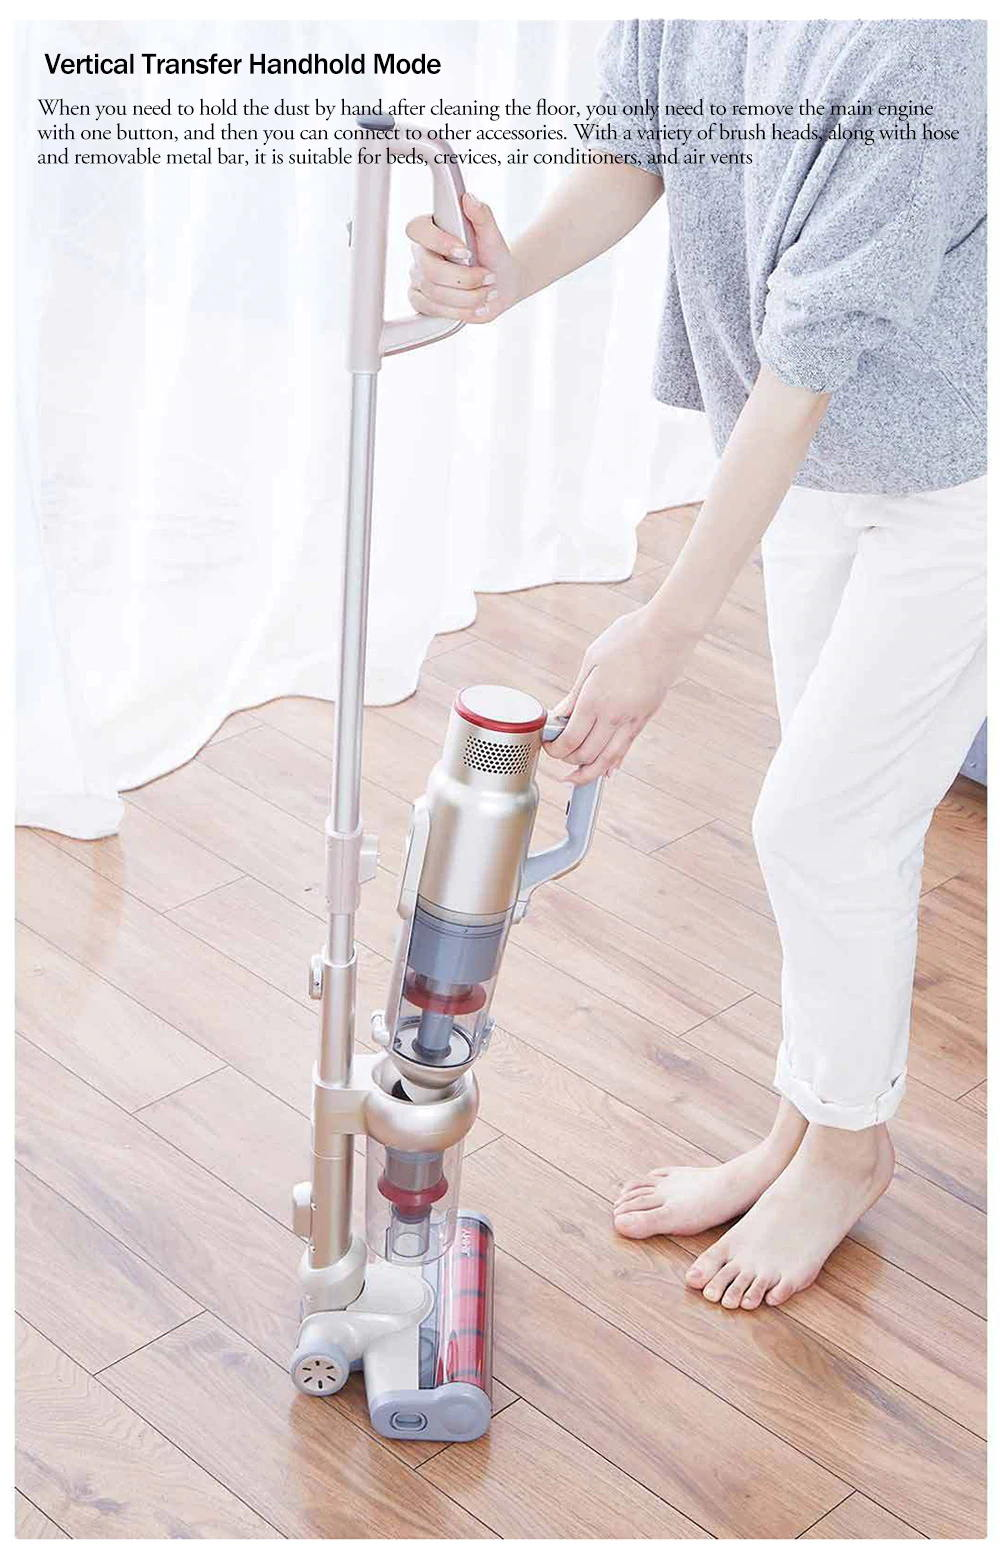 new lexy jimmy jv71 vacuum cleaner